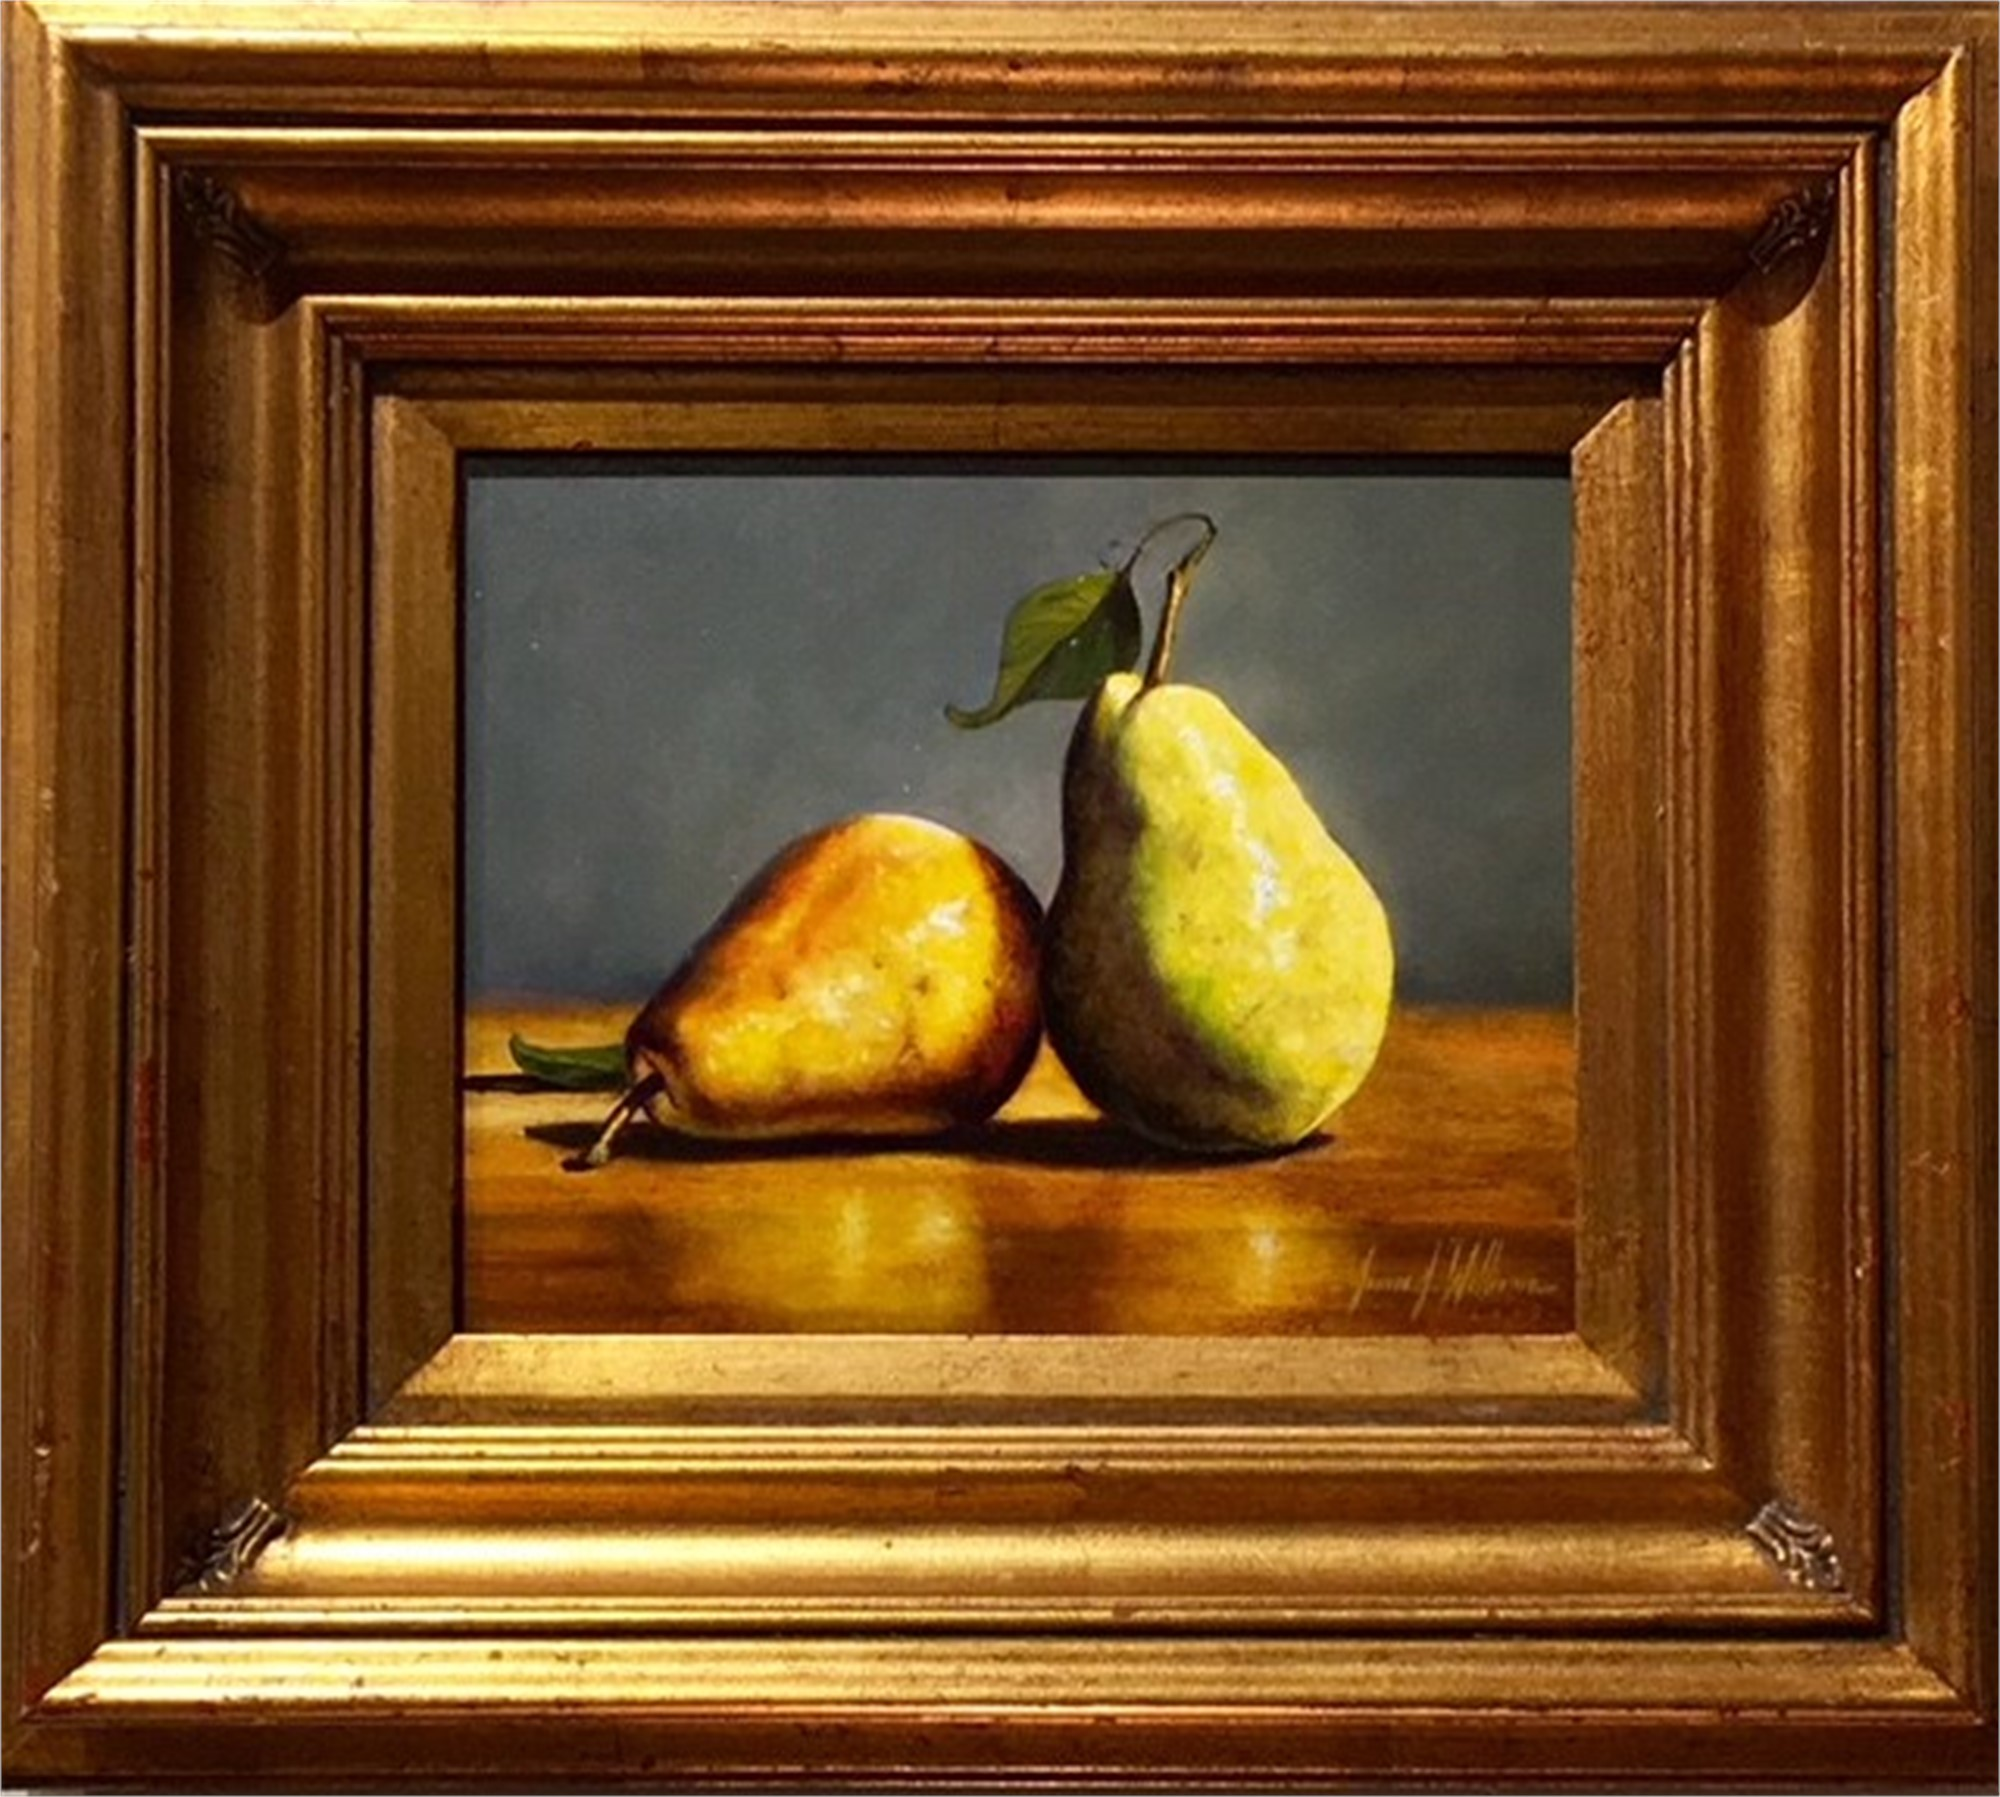 A Pair of Pears by James J. Williams